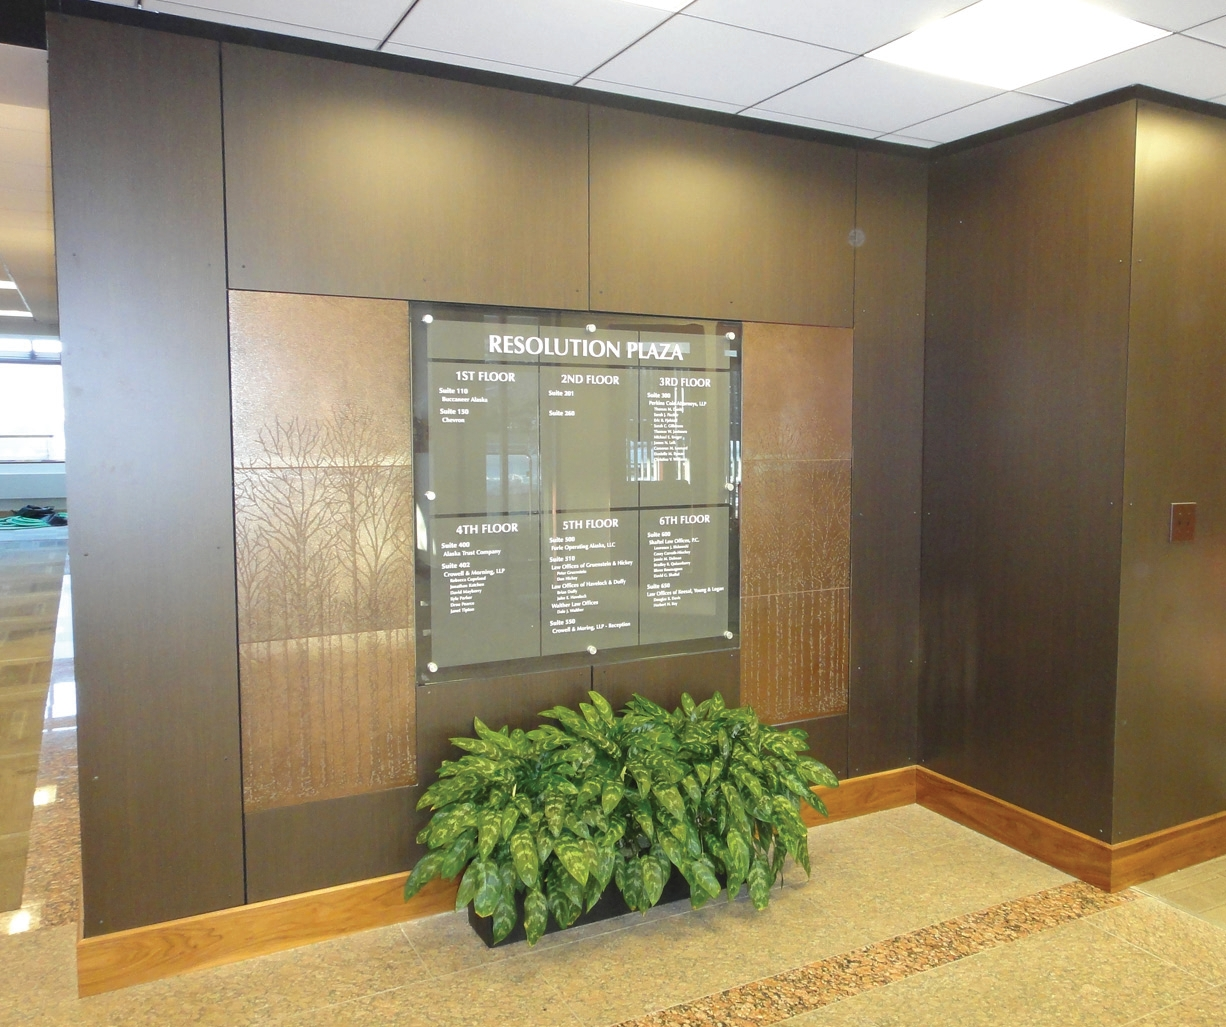 57 Xanadu Stonewood Architectural Interior Panels Were Installed In The  High Traffic Entry Area At Resolution Plaza. Stonewood Architectural Panels  Are ...